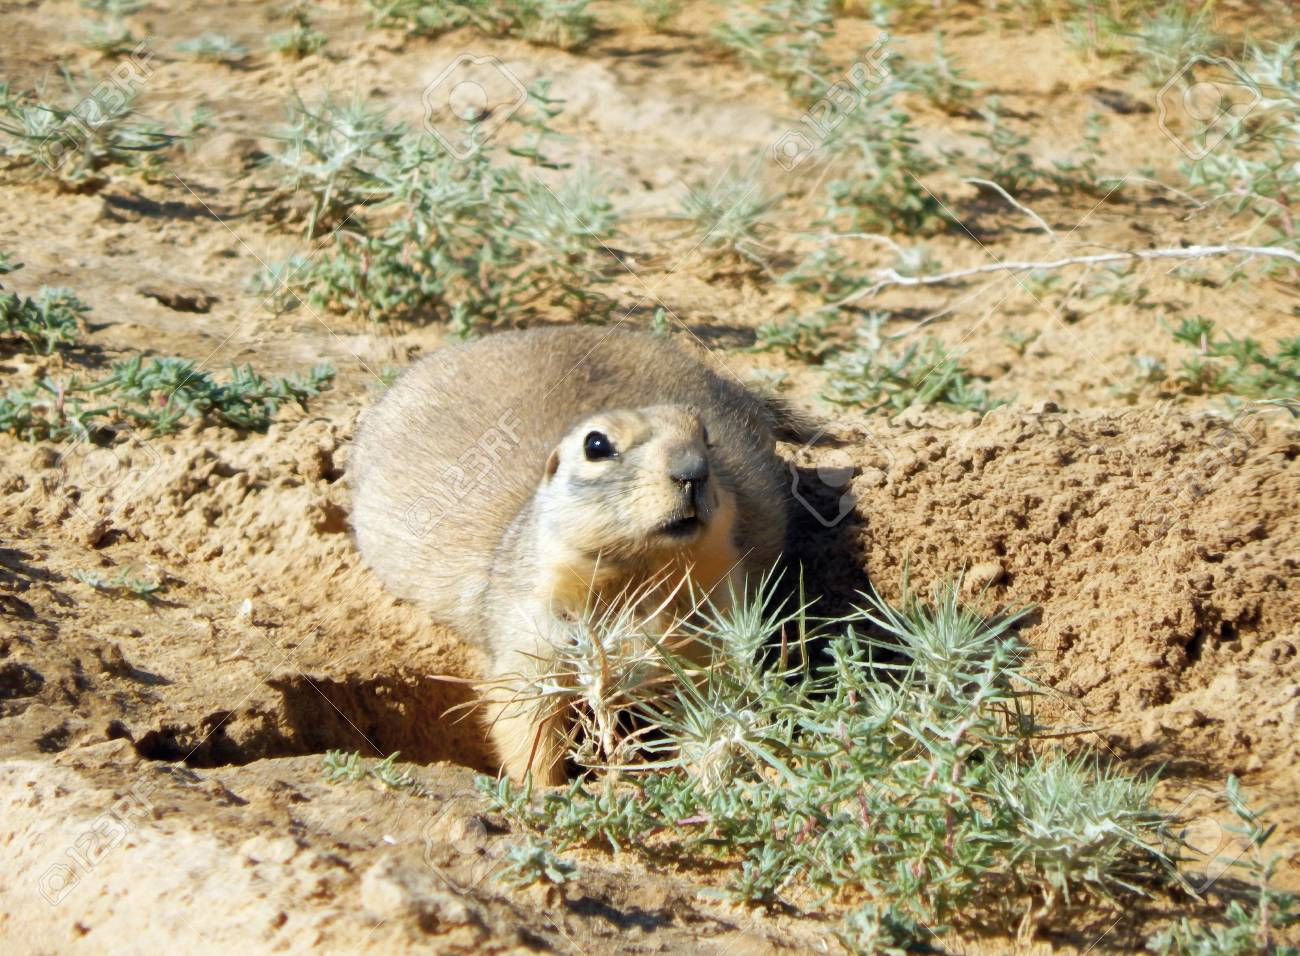 Gopher near the burrow - Kazakhstan  Mangistau region